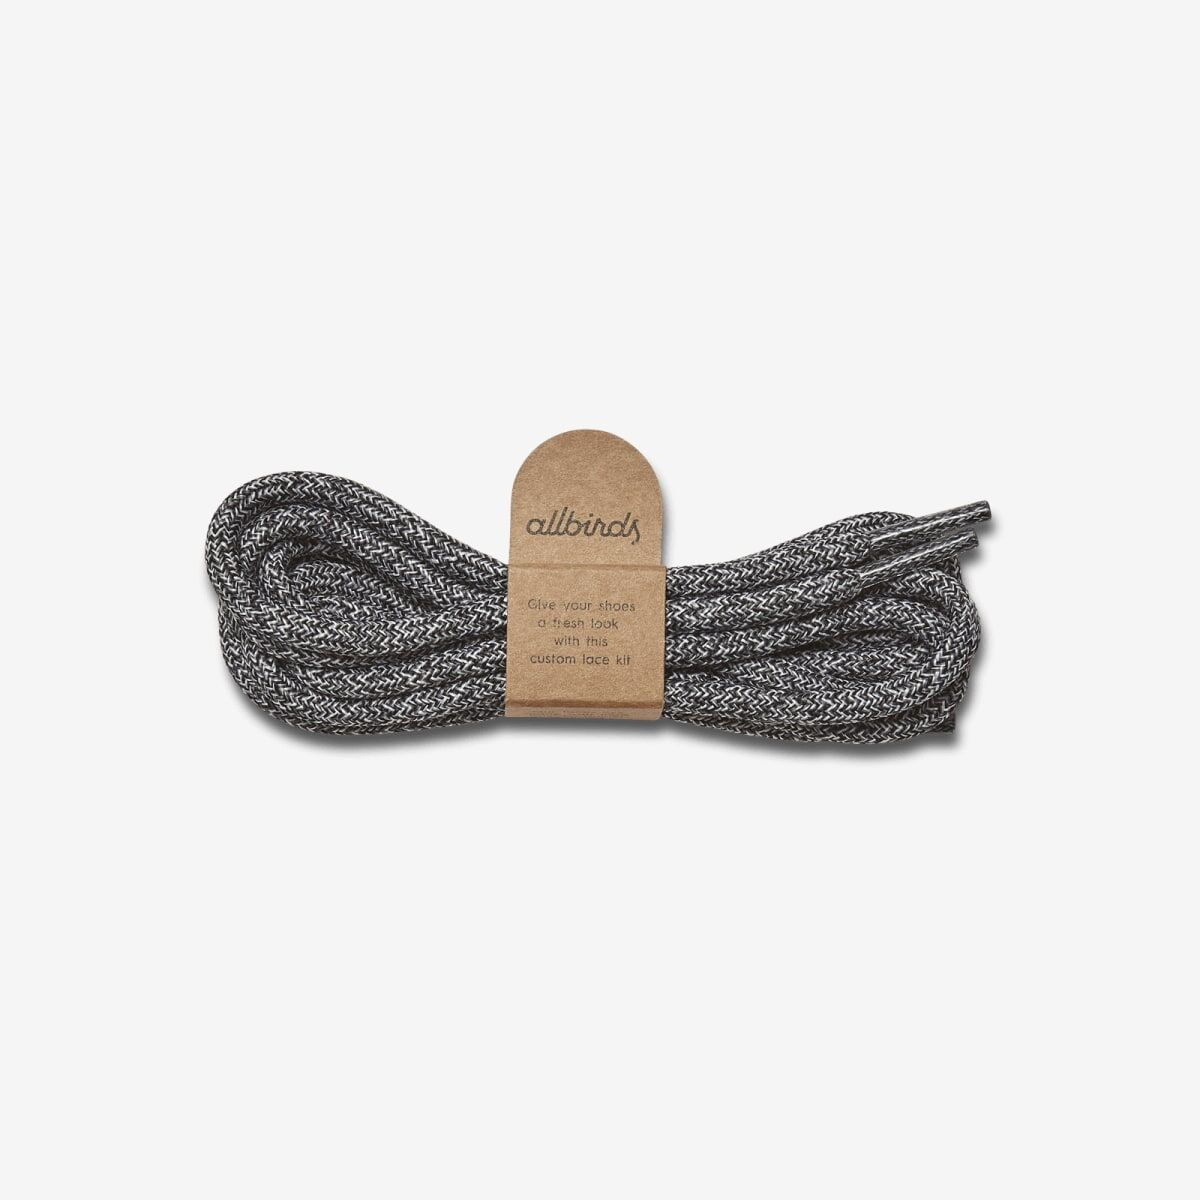 Allbirds laces made from recycled plastic bottles